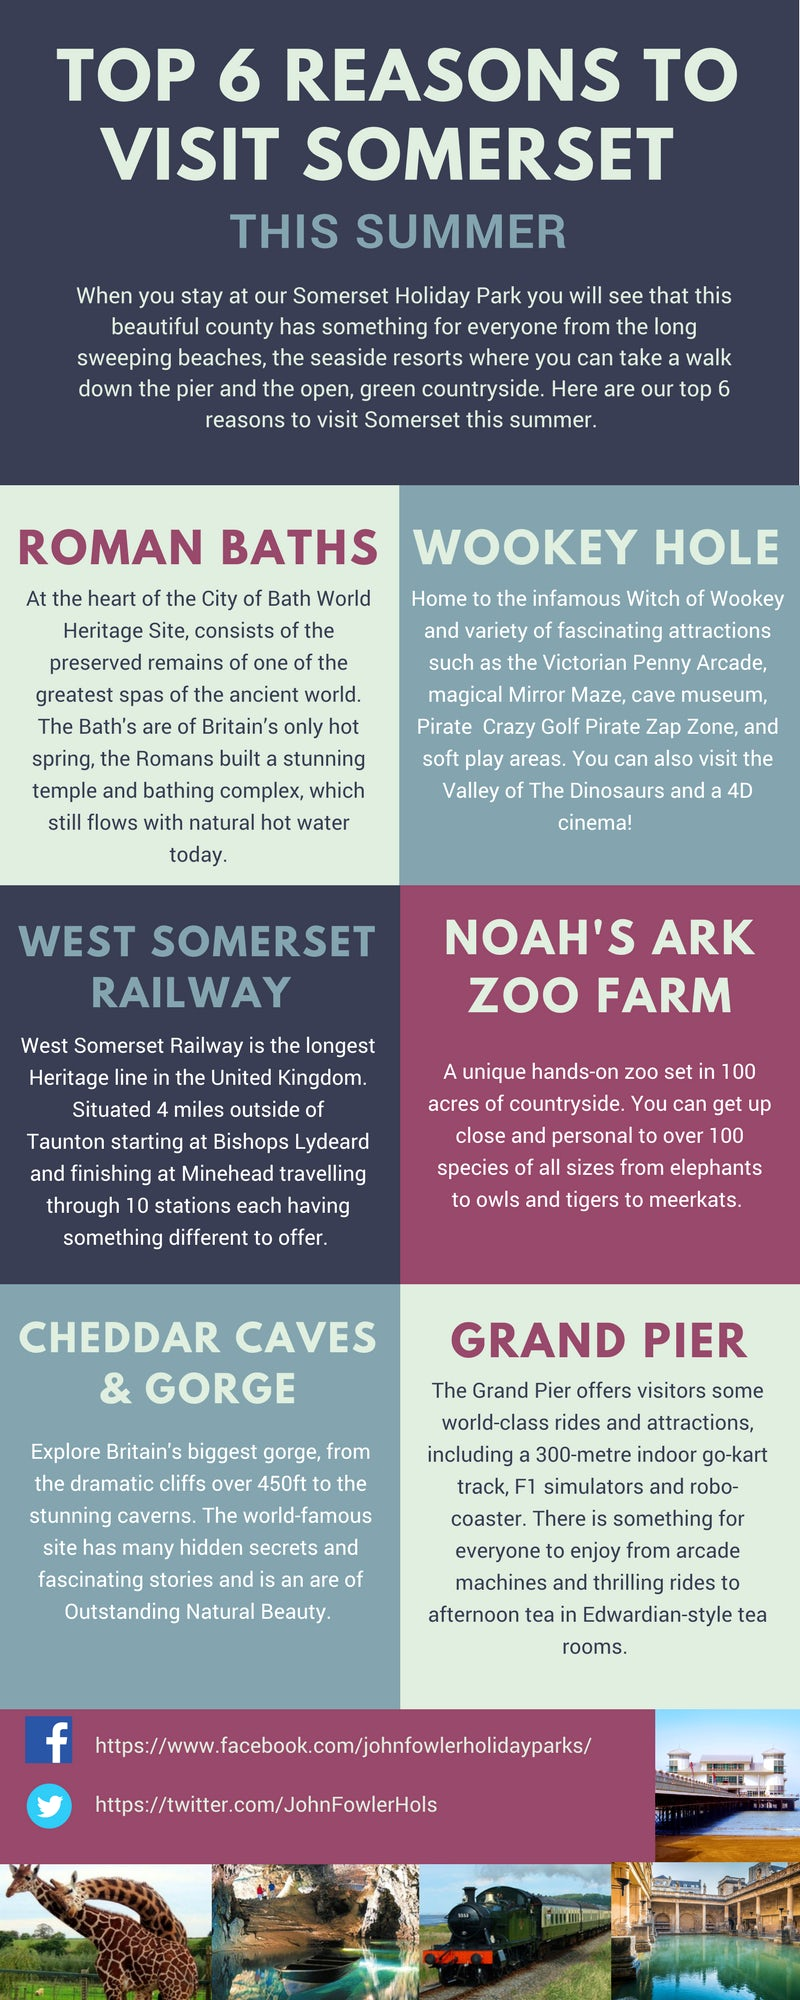 Top 6 Reasons to Visit Somerset This Summer